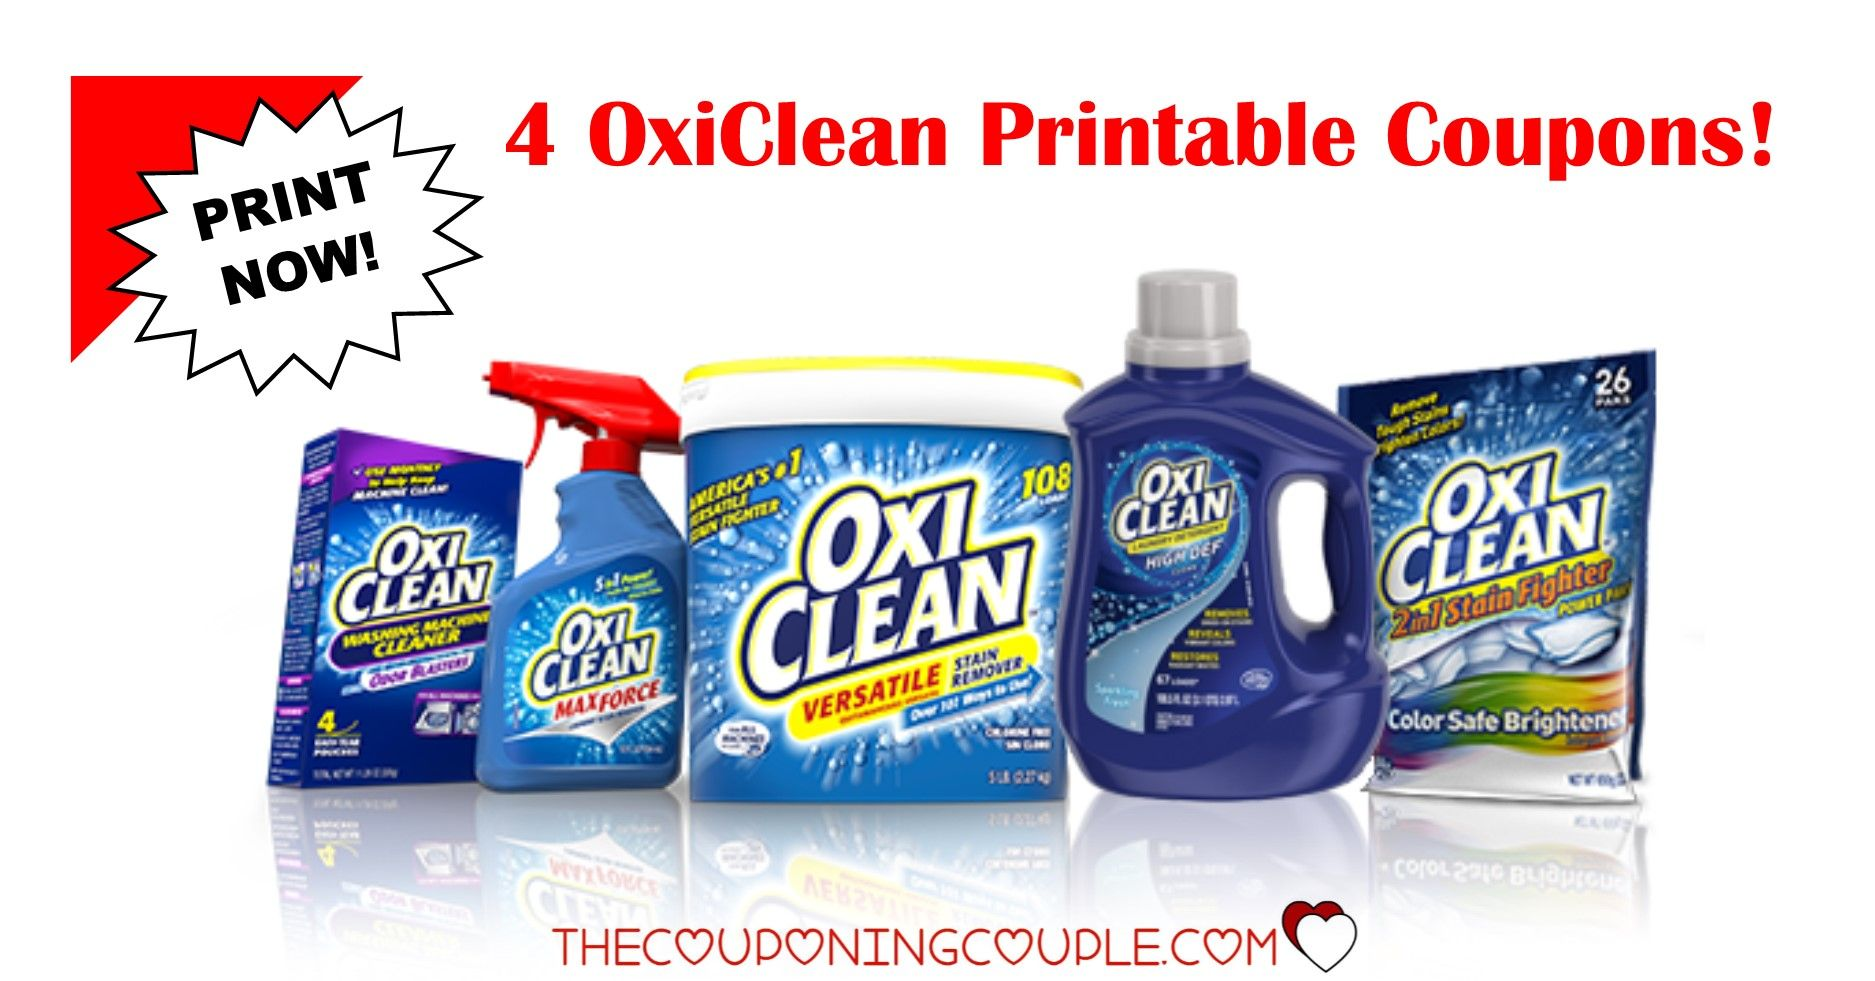 picture relating to Oxiclean Printable Coupon known as 3 Contemporary OxiClean Printable Discount coupons ~ $3.50 in just Cost savings! PRINT